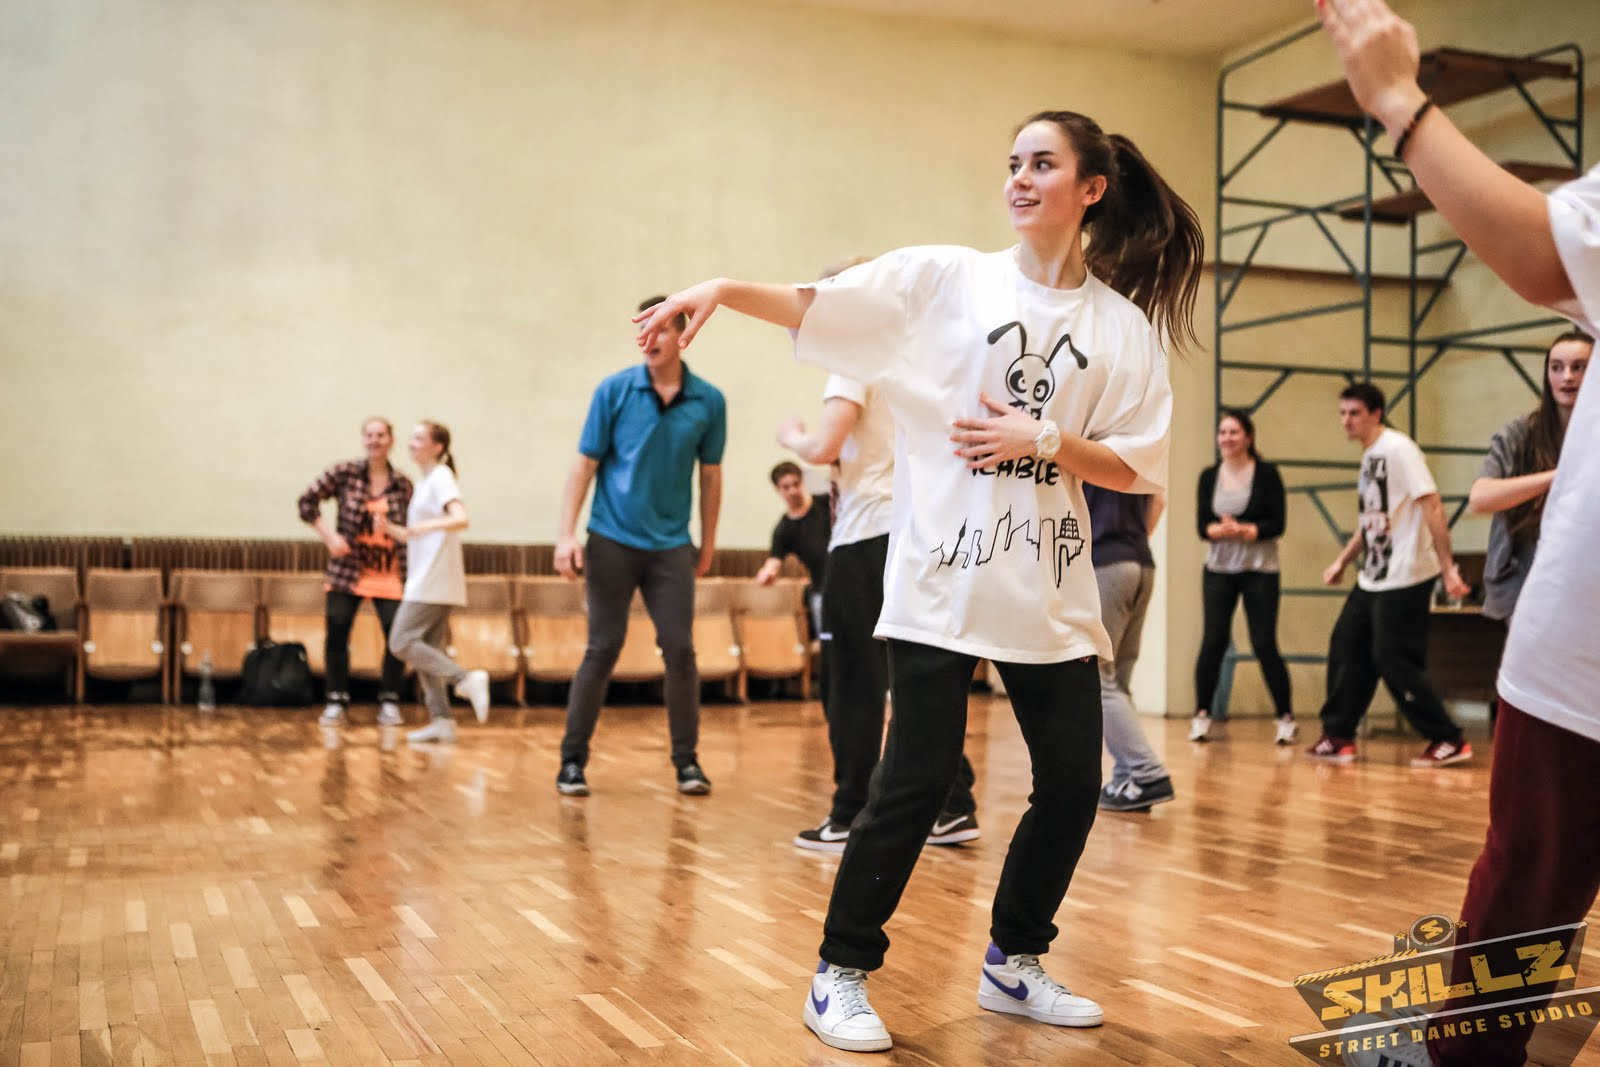 Workshop with Kusch (Russia) - IMG_4830.jpg